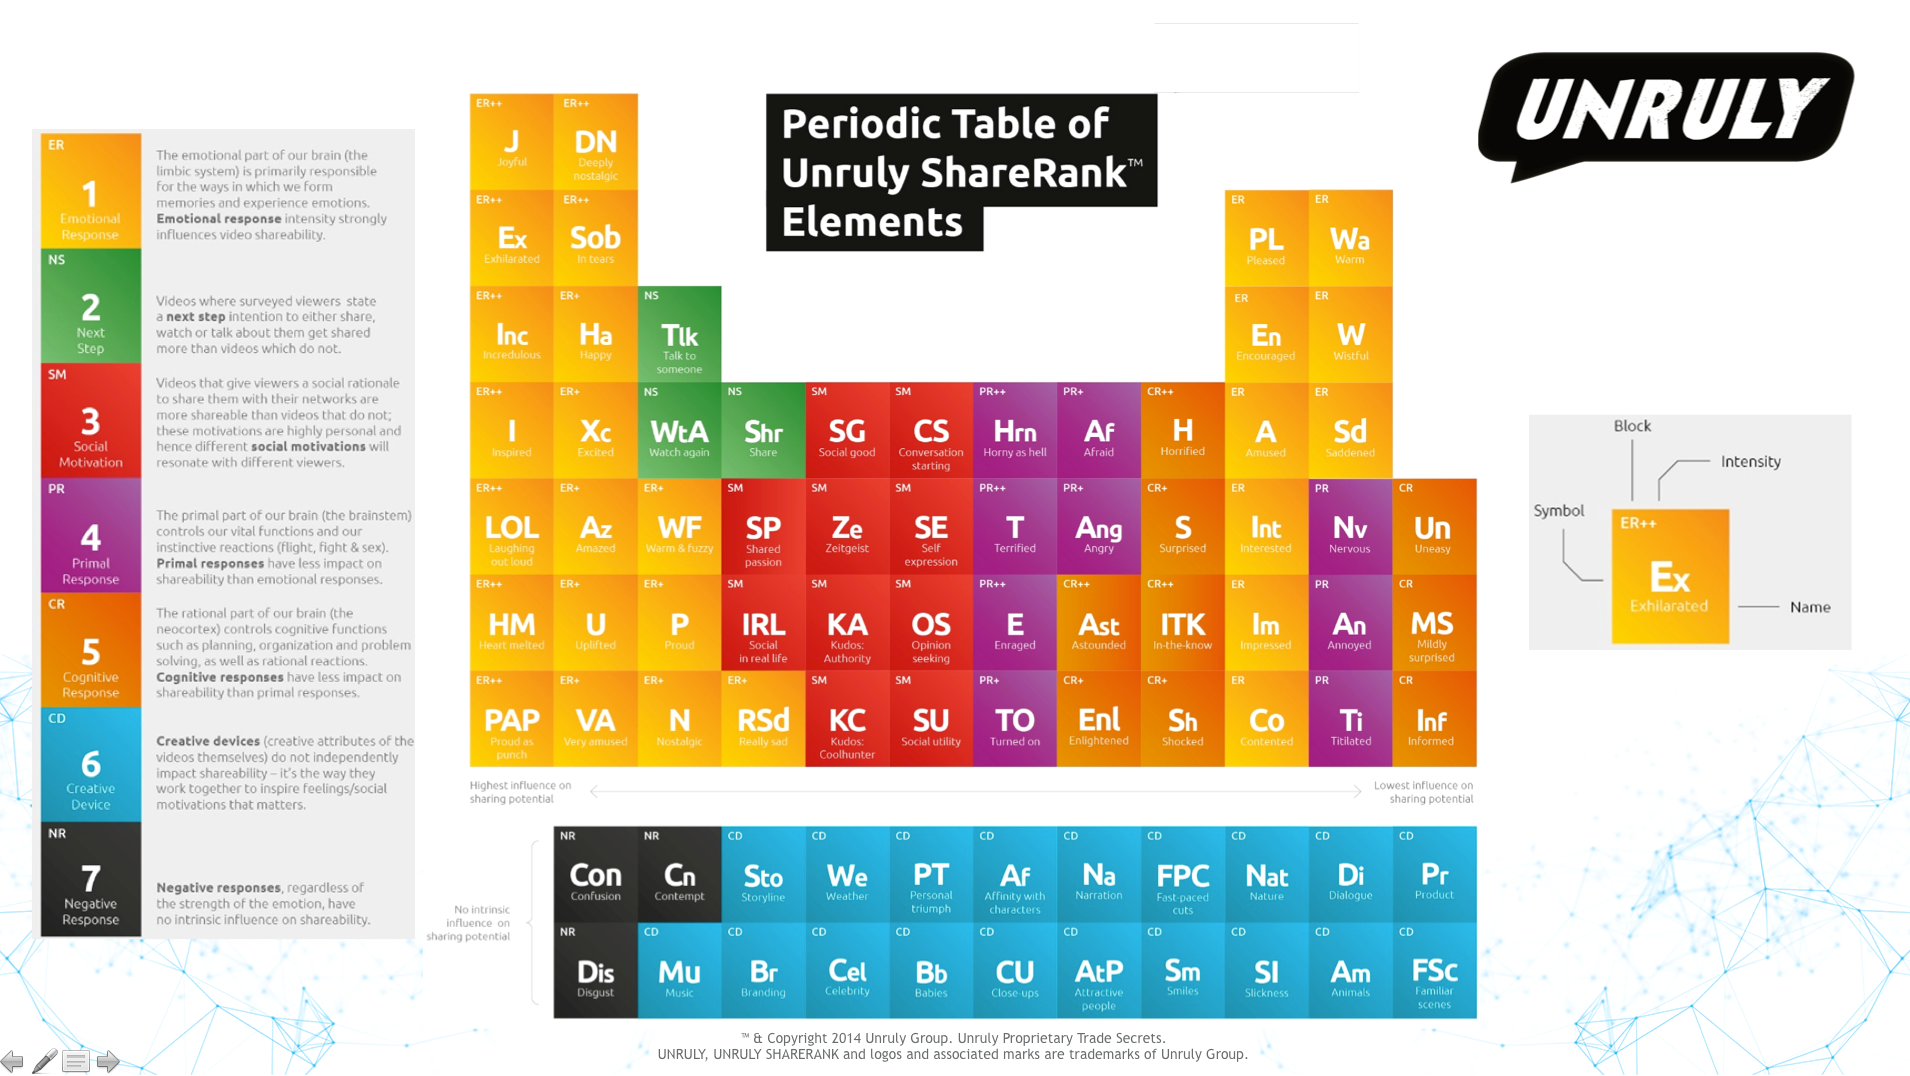 Define Family In Terms Of The Periodic Table